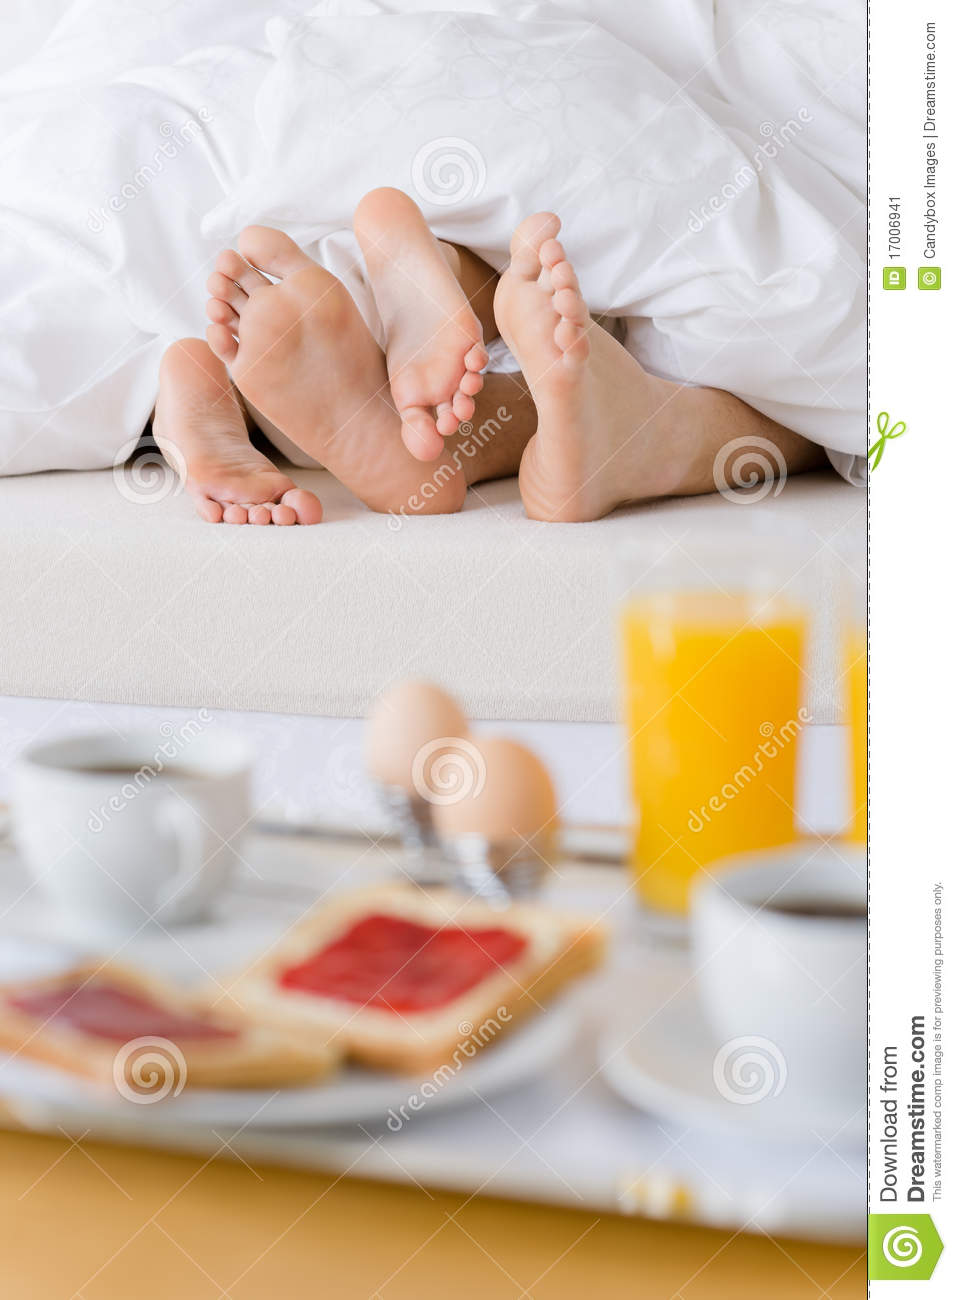 Luxury hotel honeymoon breakfast couple in bed stock for Where to go for a honeymoon